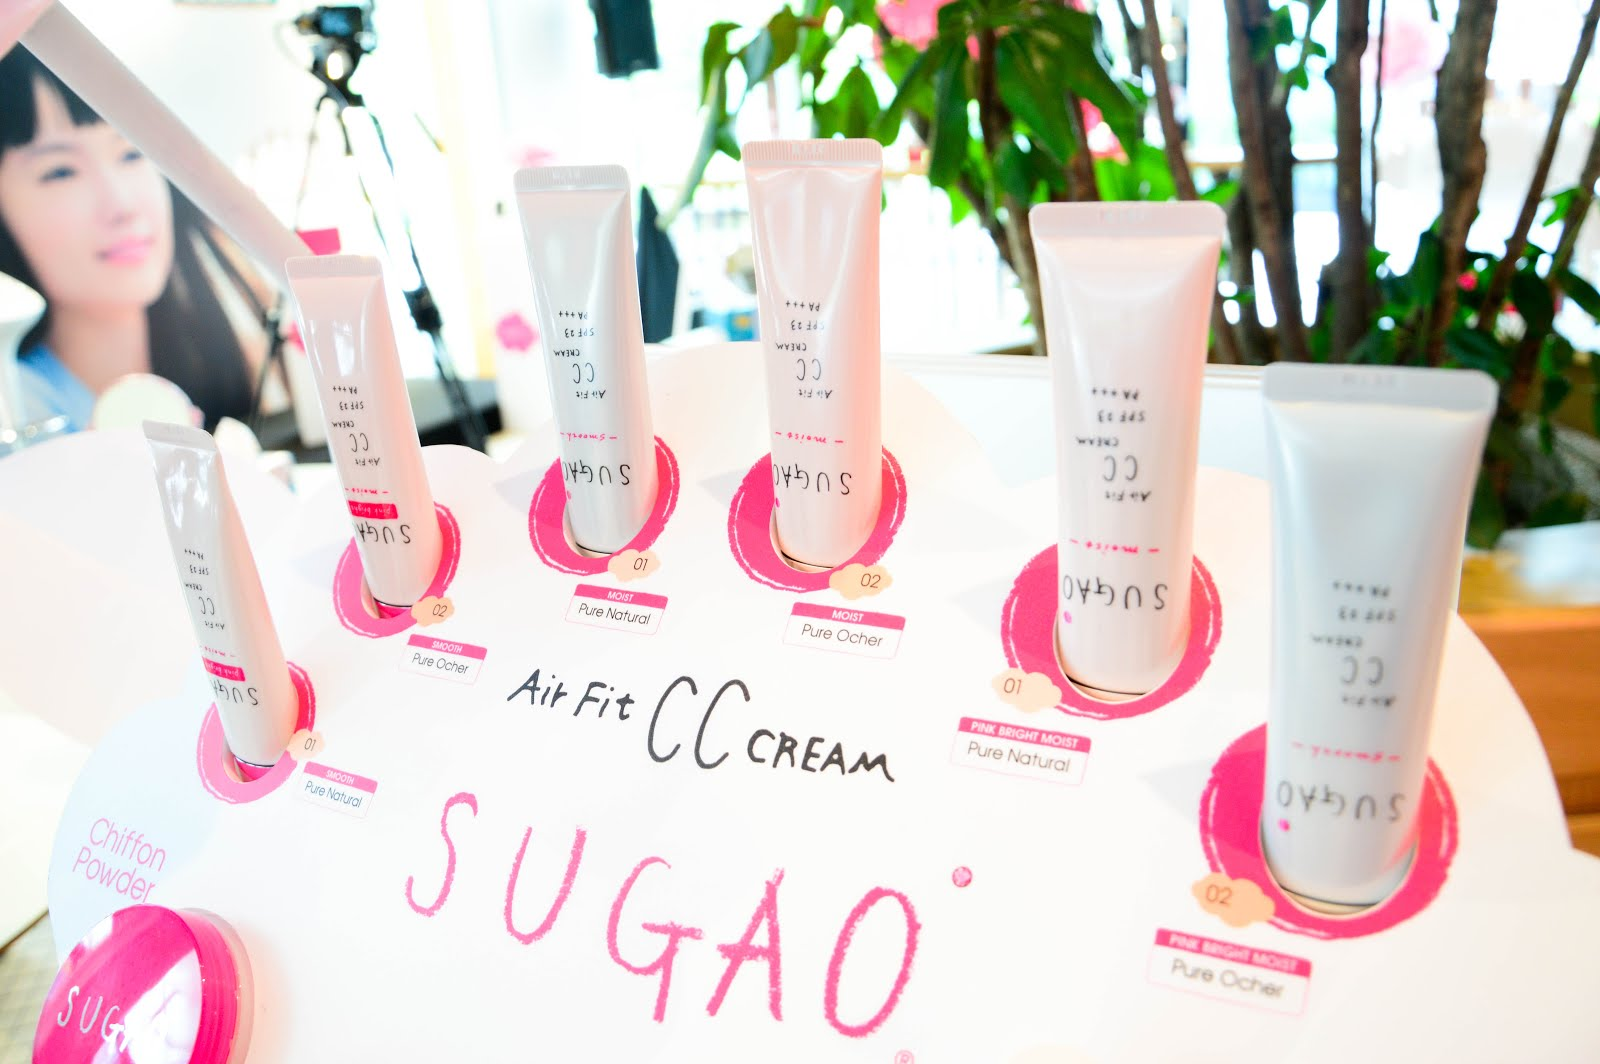 Sugao Air Fit CC Cream review